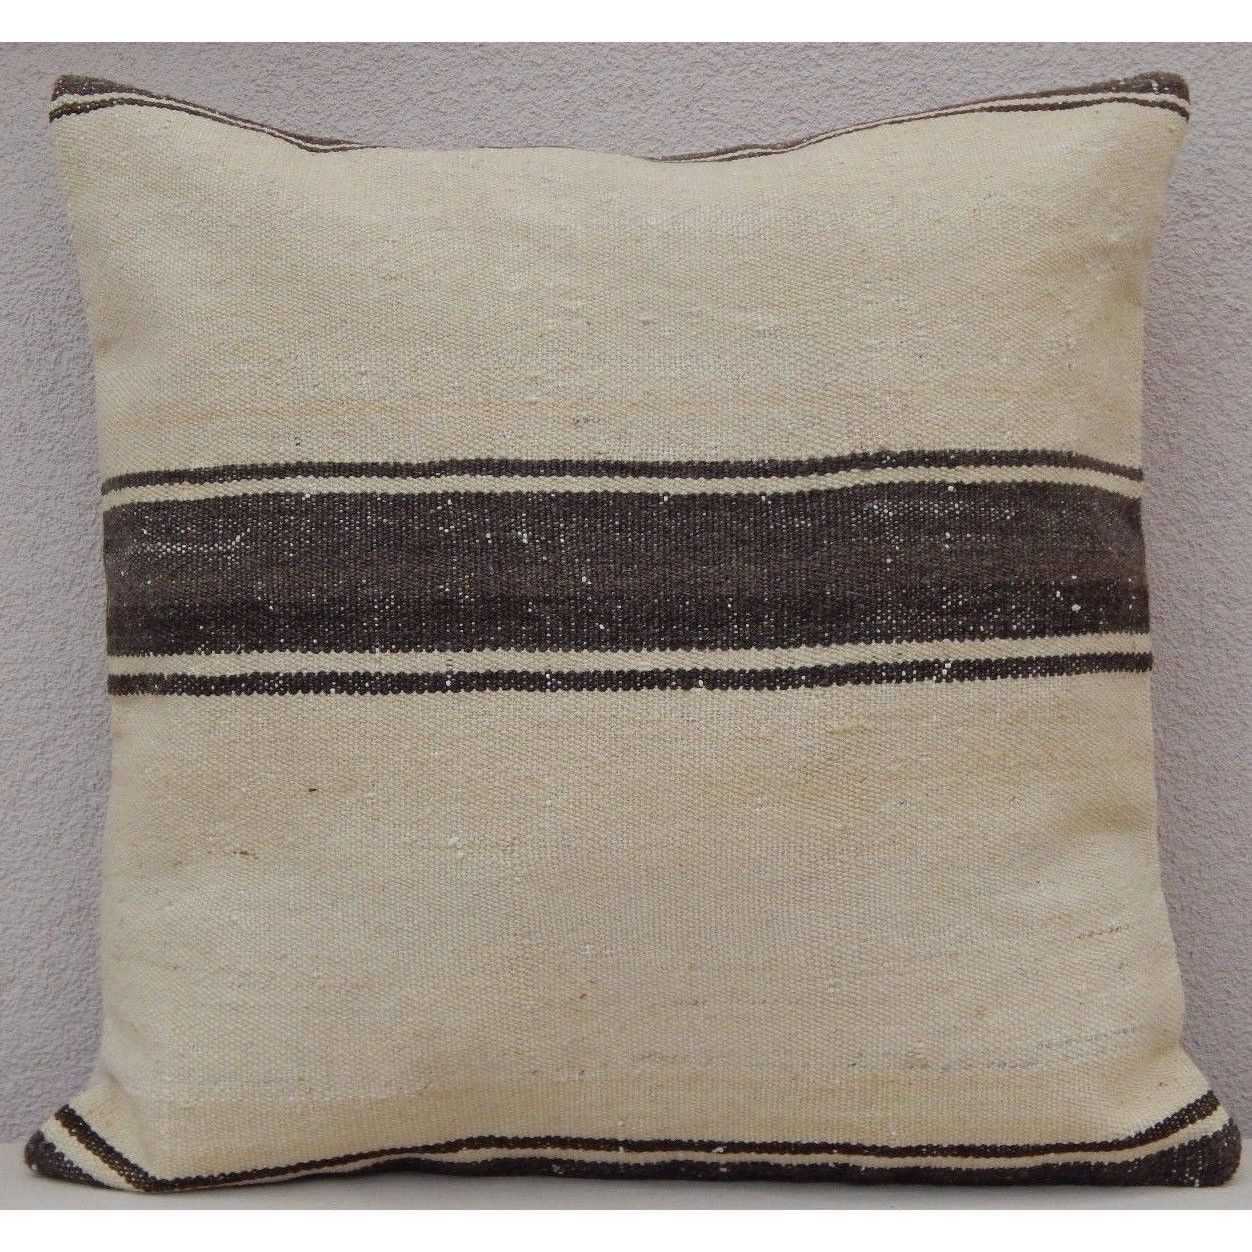 24 X 24 Couch Pillow Euro Sham Large Sofa Pillow Cover Outdoor